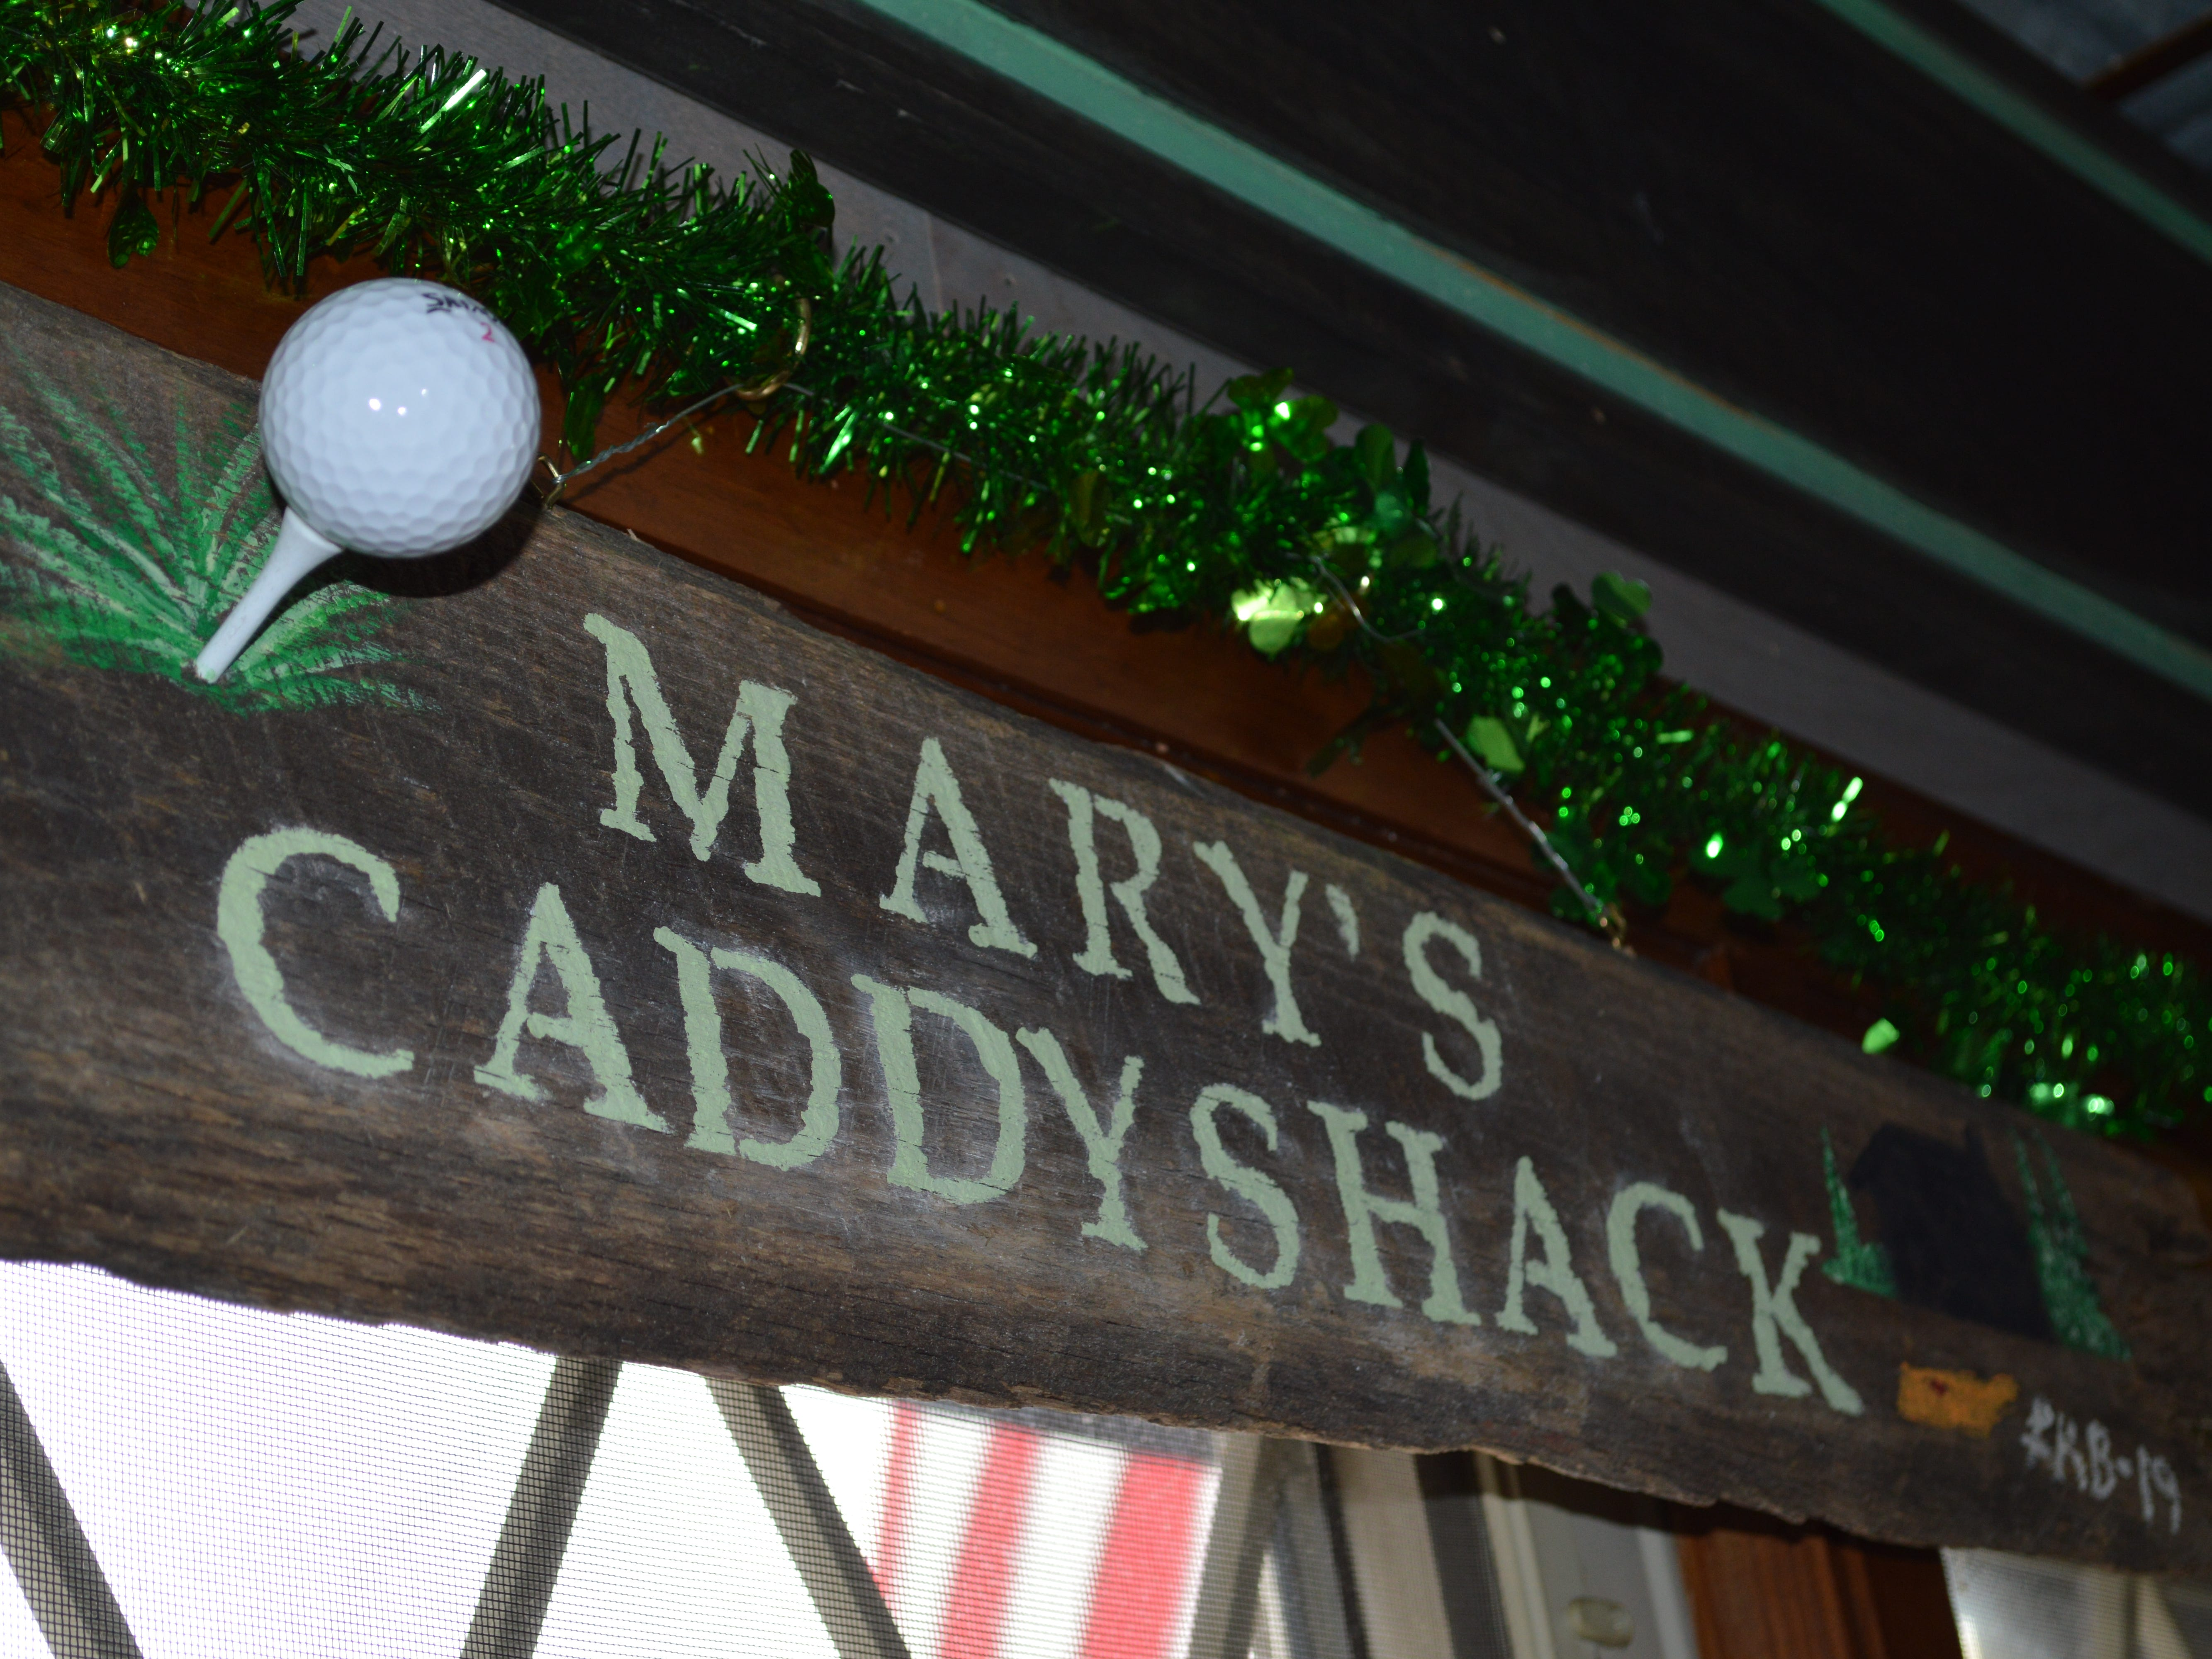 Mary's Caddyshack in New Berlin opened in January.